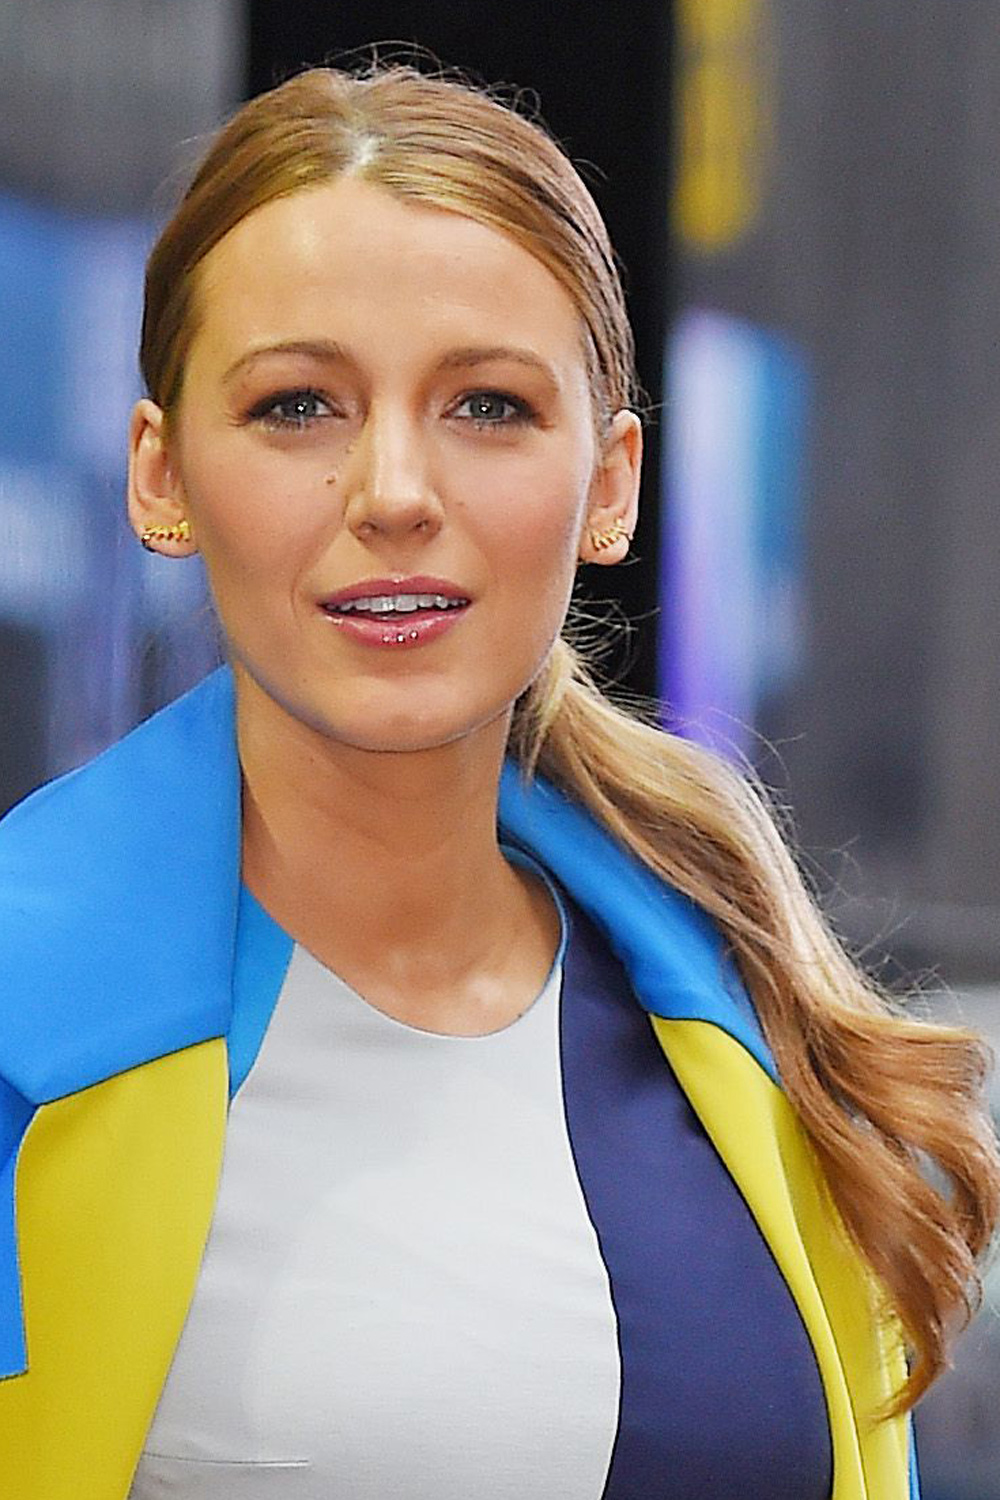 style icon blake lively works 10 different outfits and hairstyles